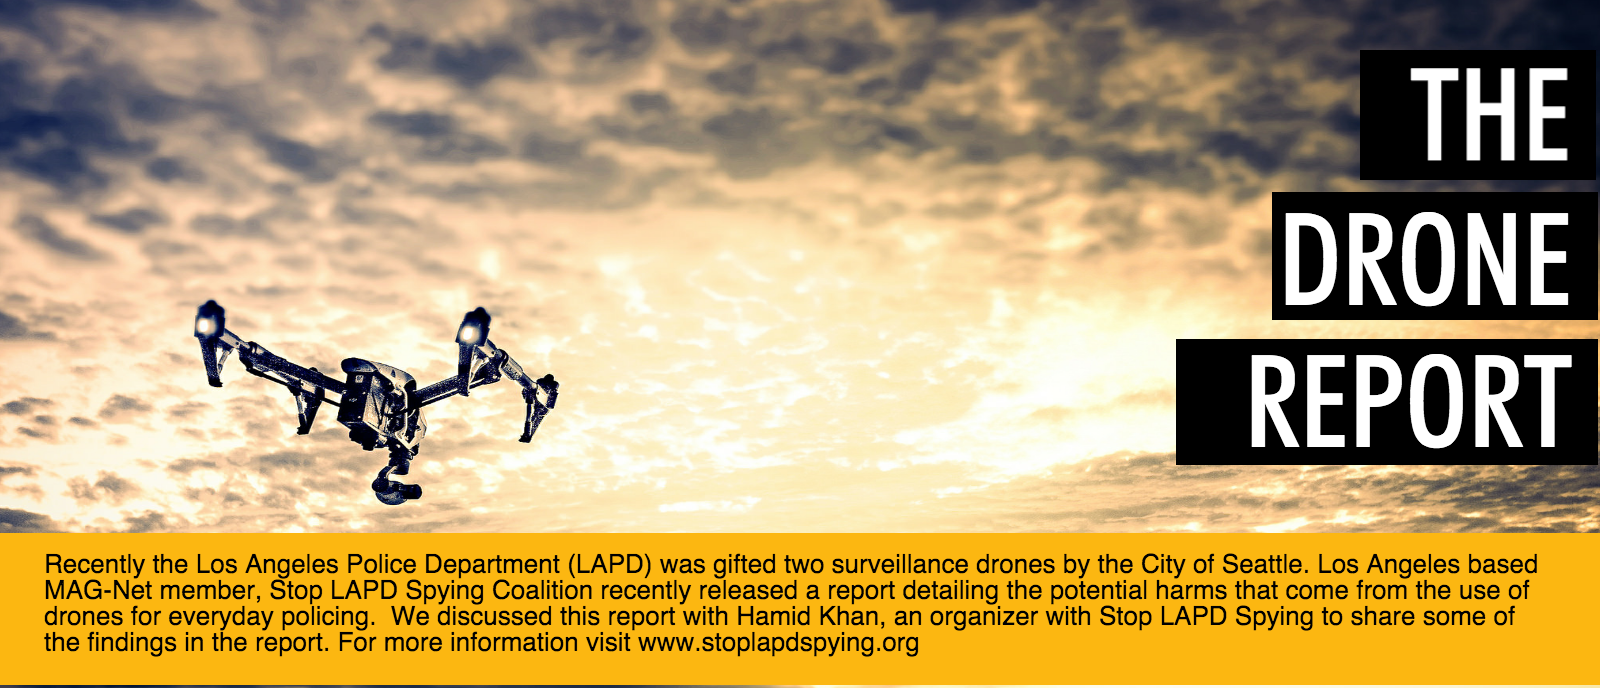 Stop LAPD Spying Drone